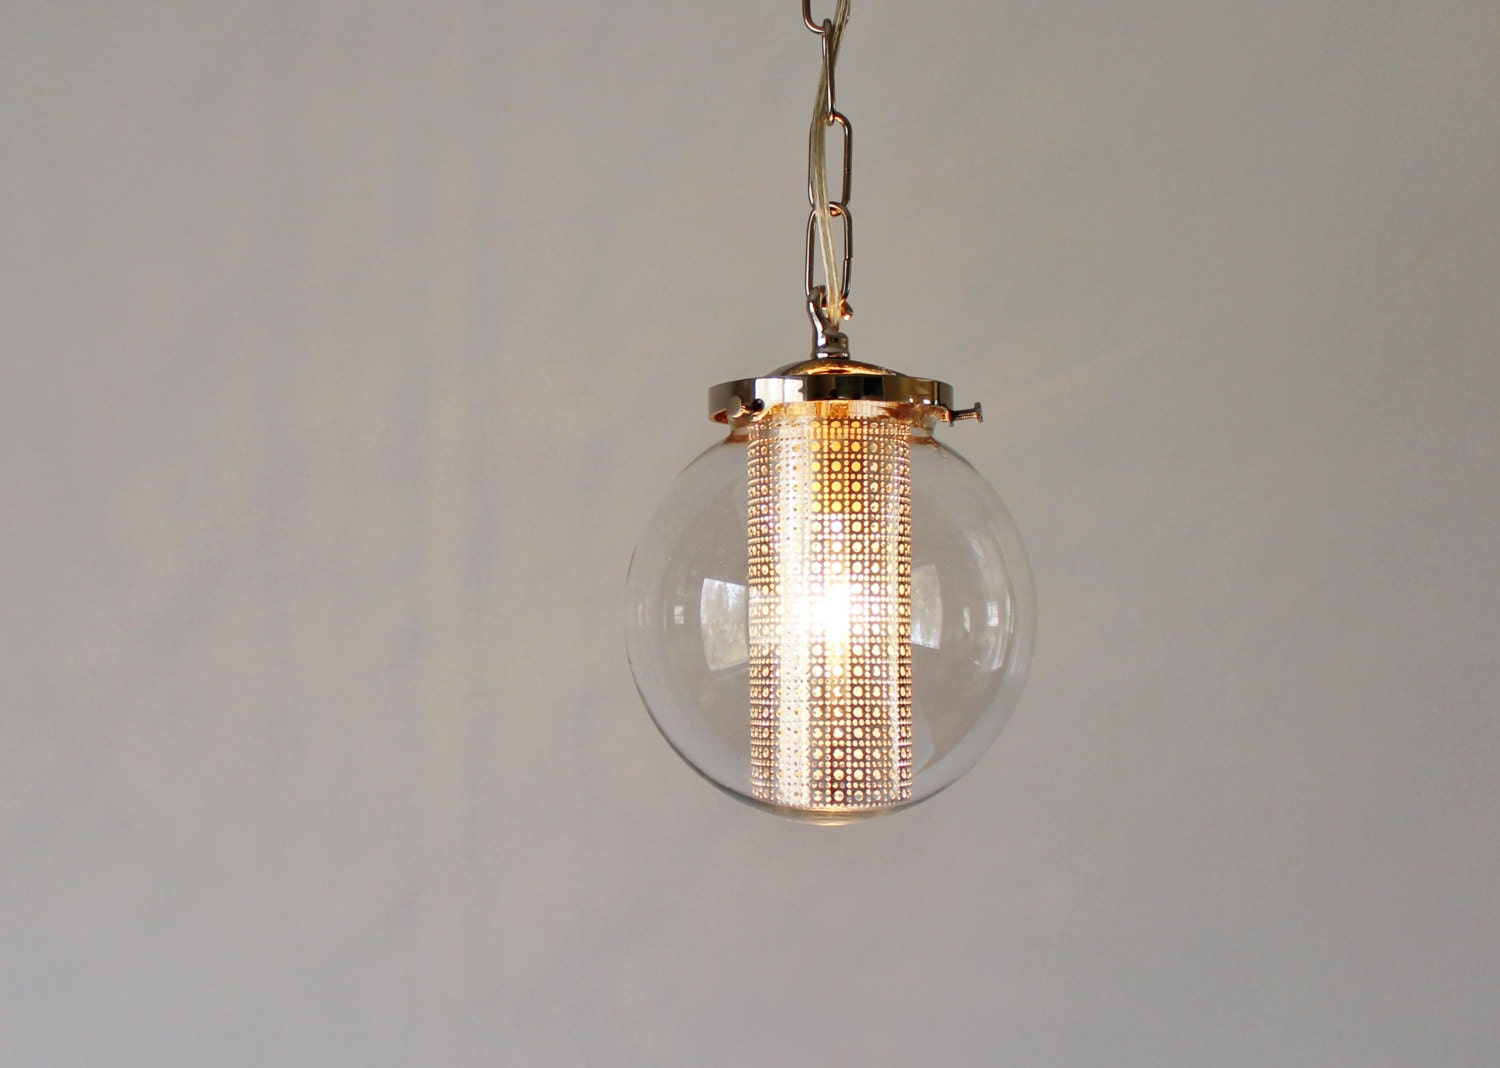 Globe pendant light modern hanging pendant lamp clear glass for Modern hanging pendant lights